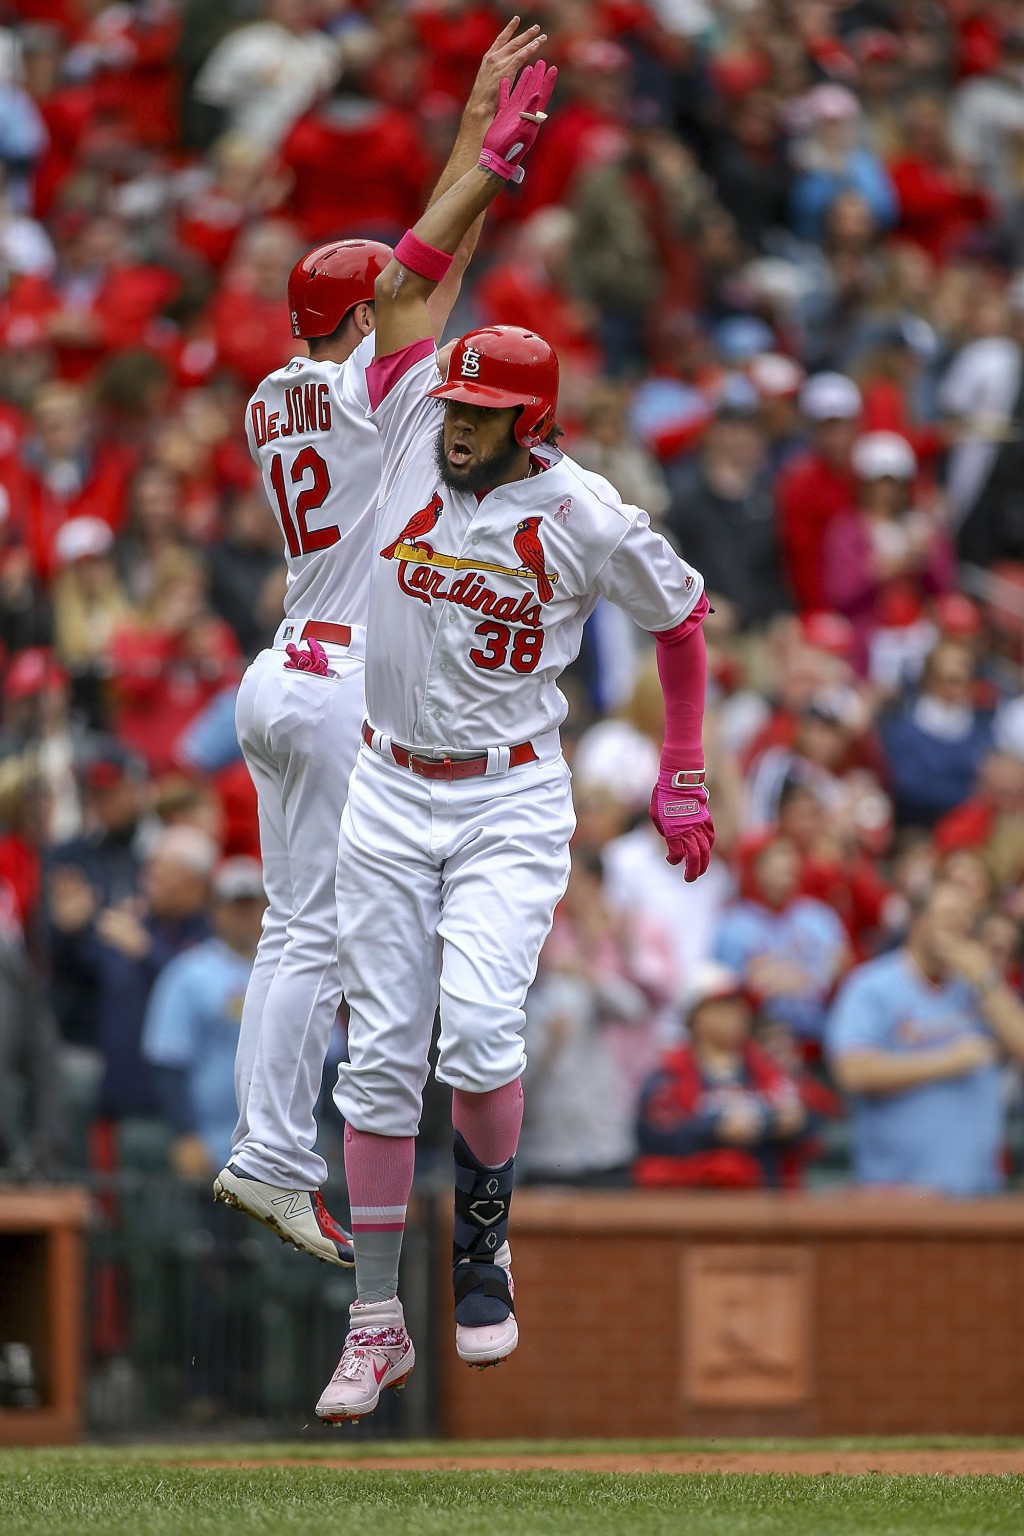 St. Louis Cardinals' Jose Martinez, right, celebrates with teammate Paul DeJong after hitting a two-run home run during the second inning of a basebal...